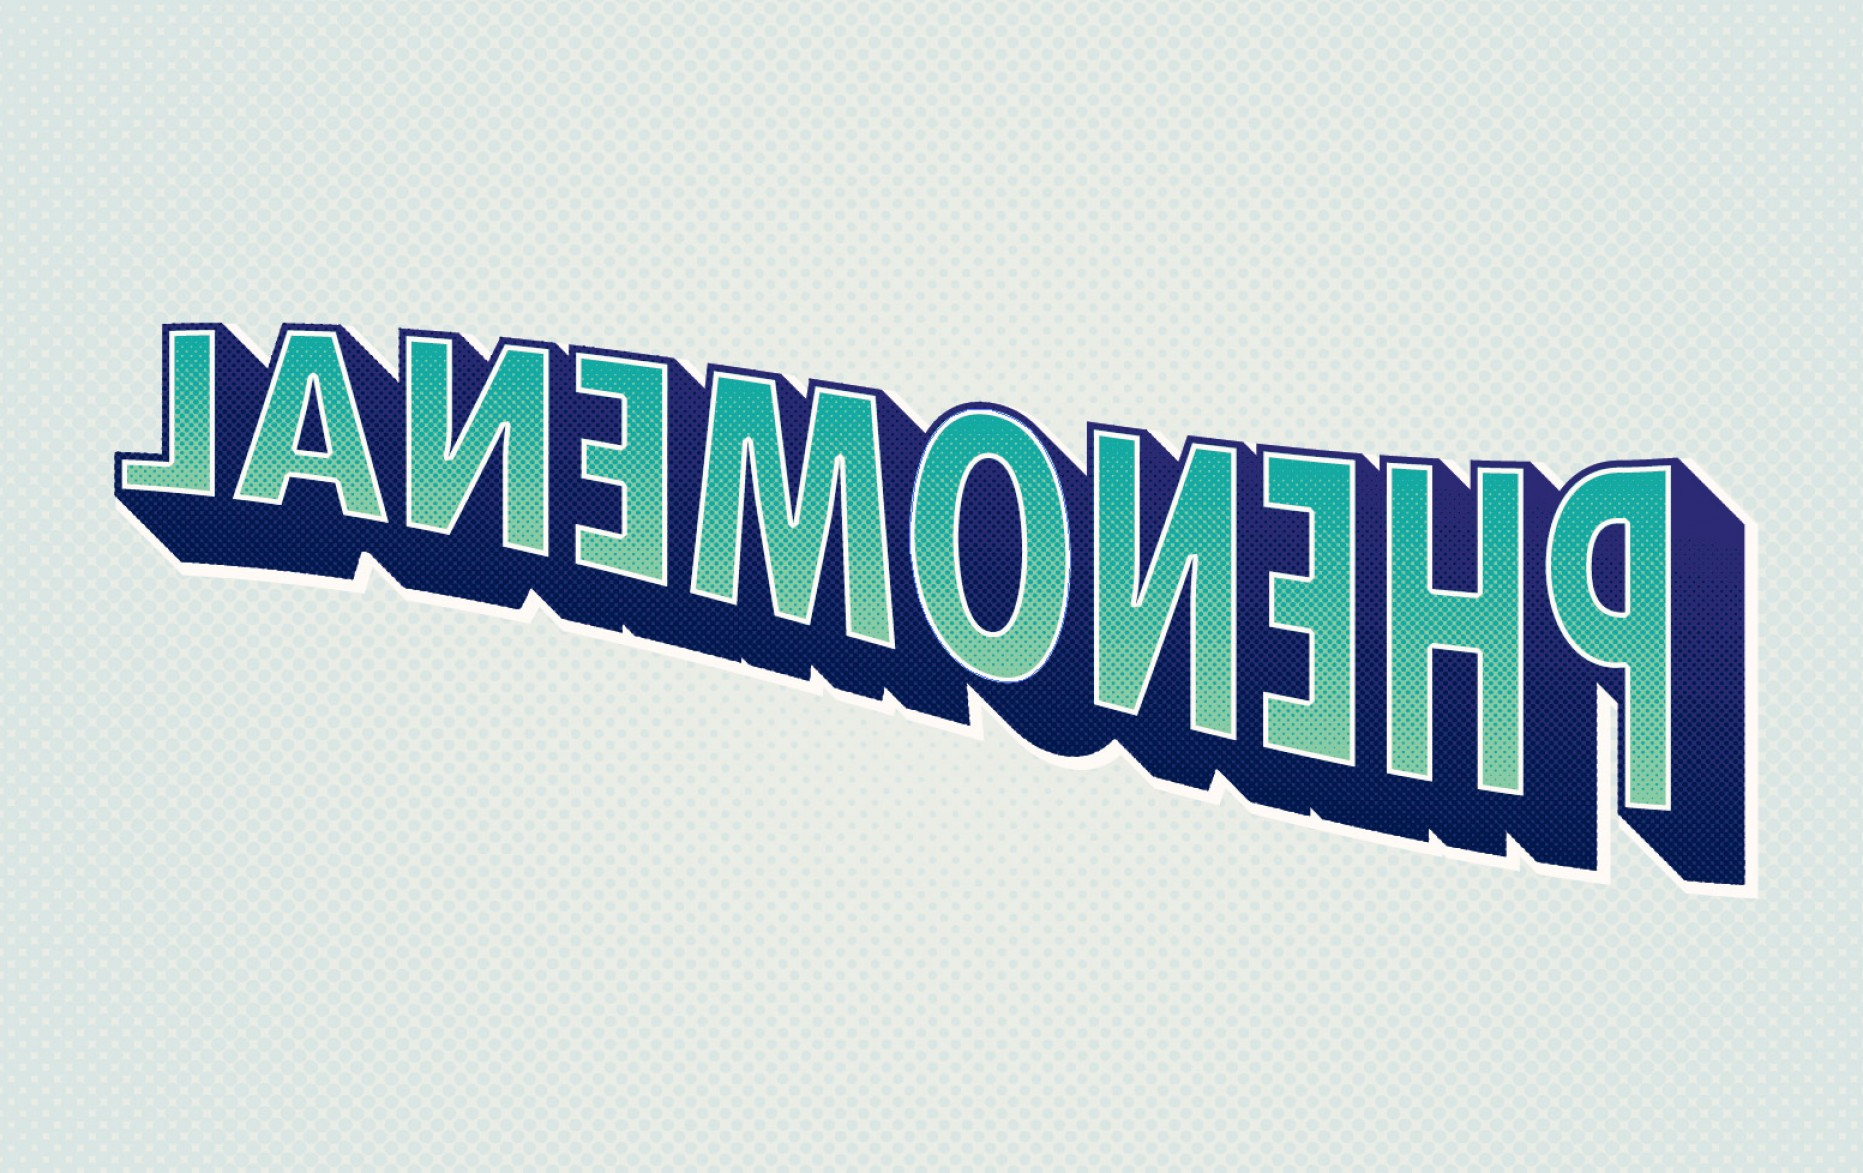 Vector In Photoshop CS5: How To Create A Comic Style Text Effect In Illustrator